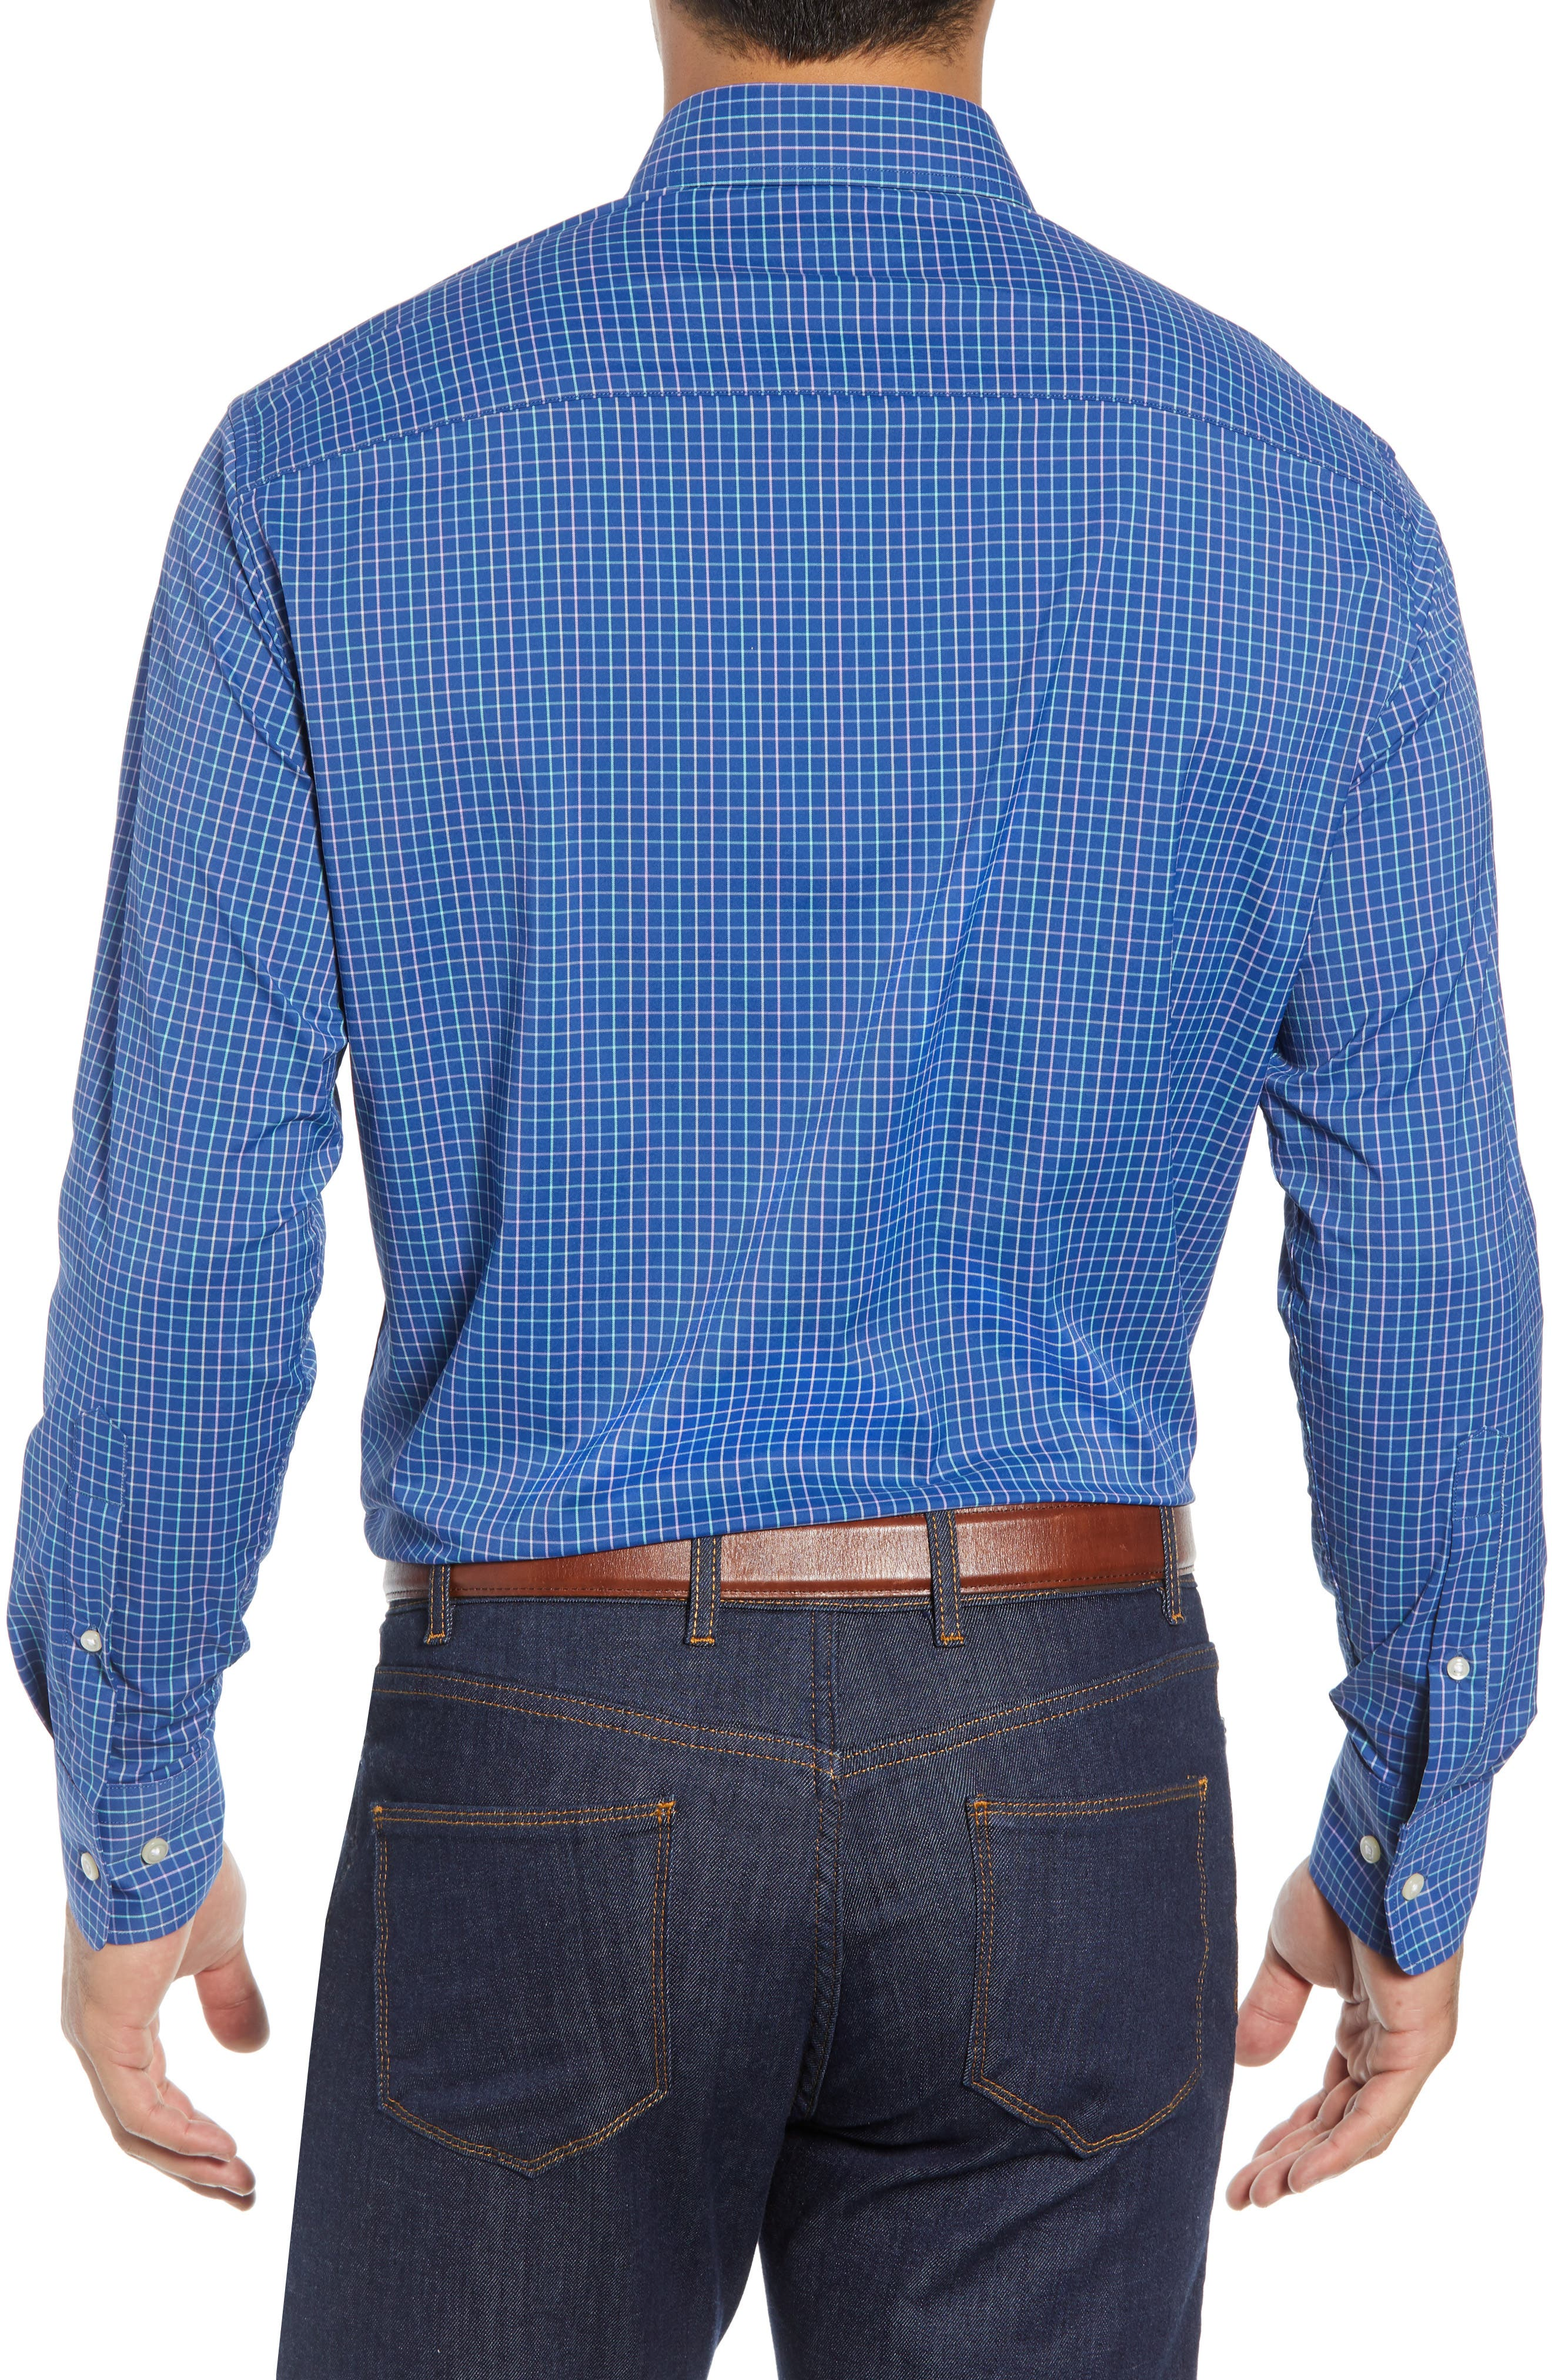 Montgomery Regular Fit Performance Sport Shirt,                             Alternate thumbnail 3, color,                             PLAZA BLUE